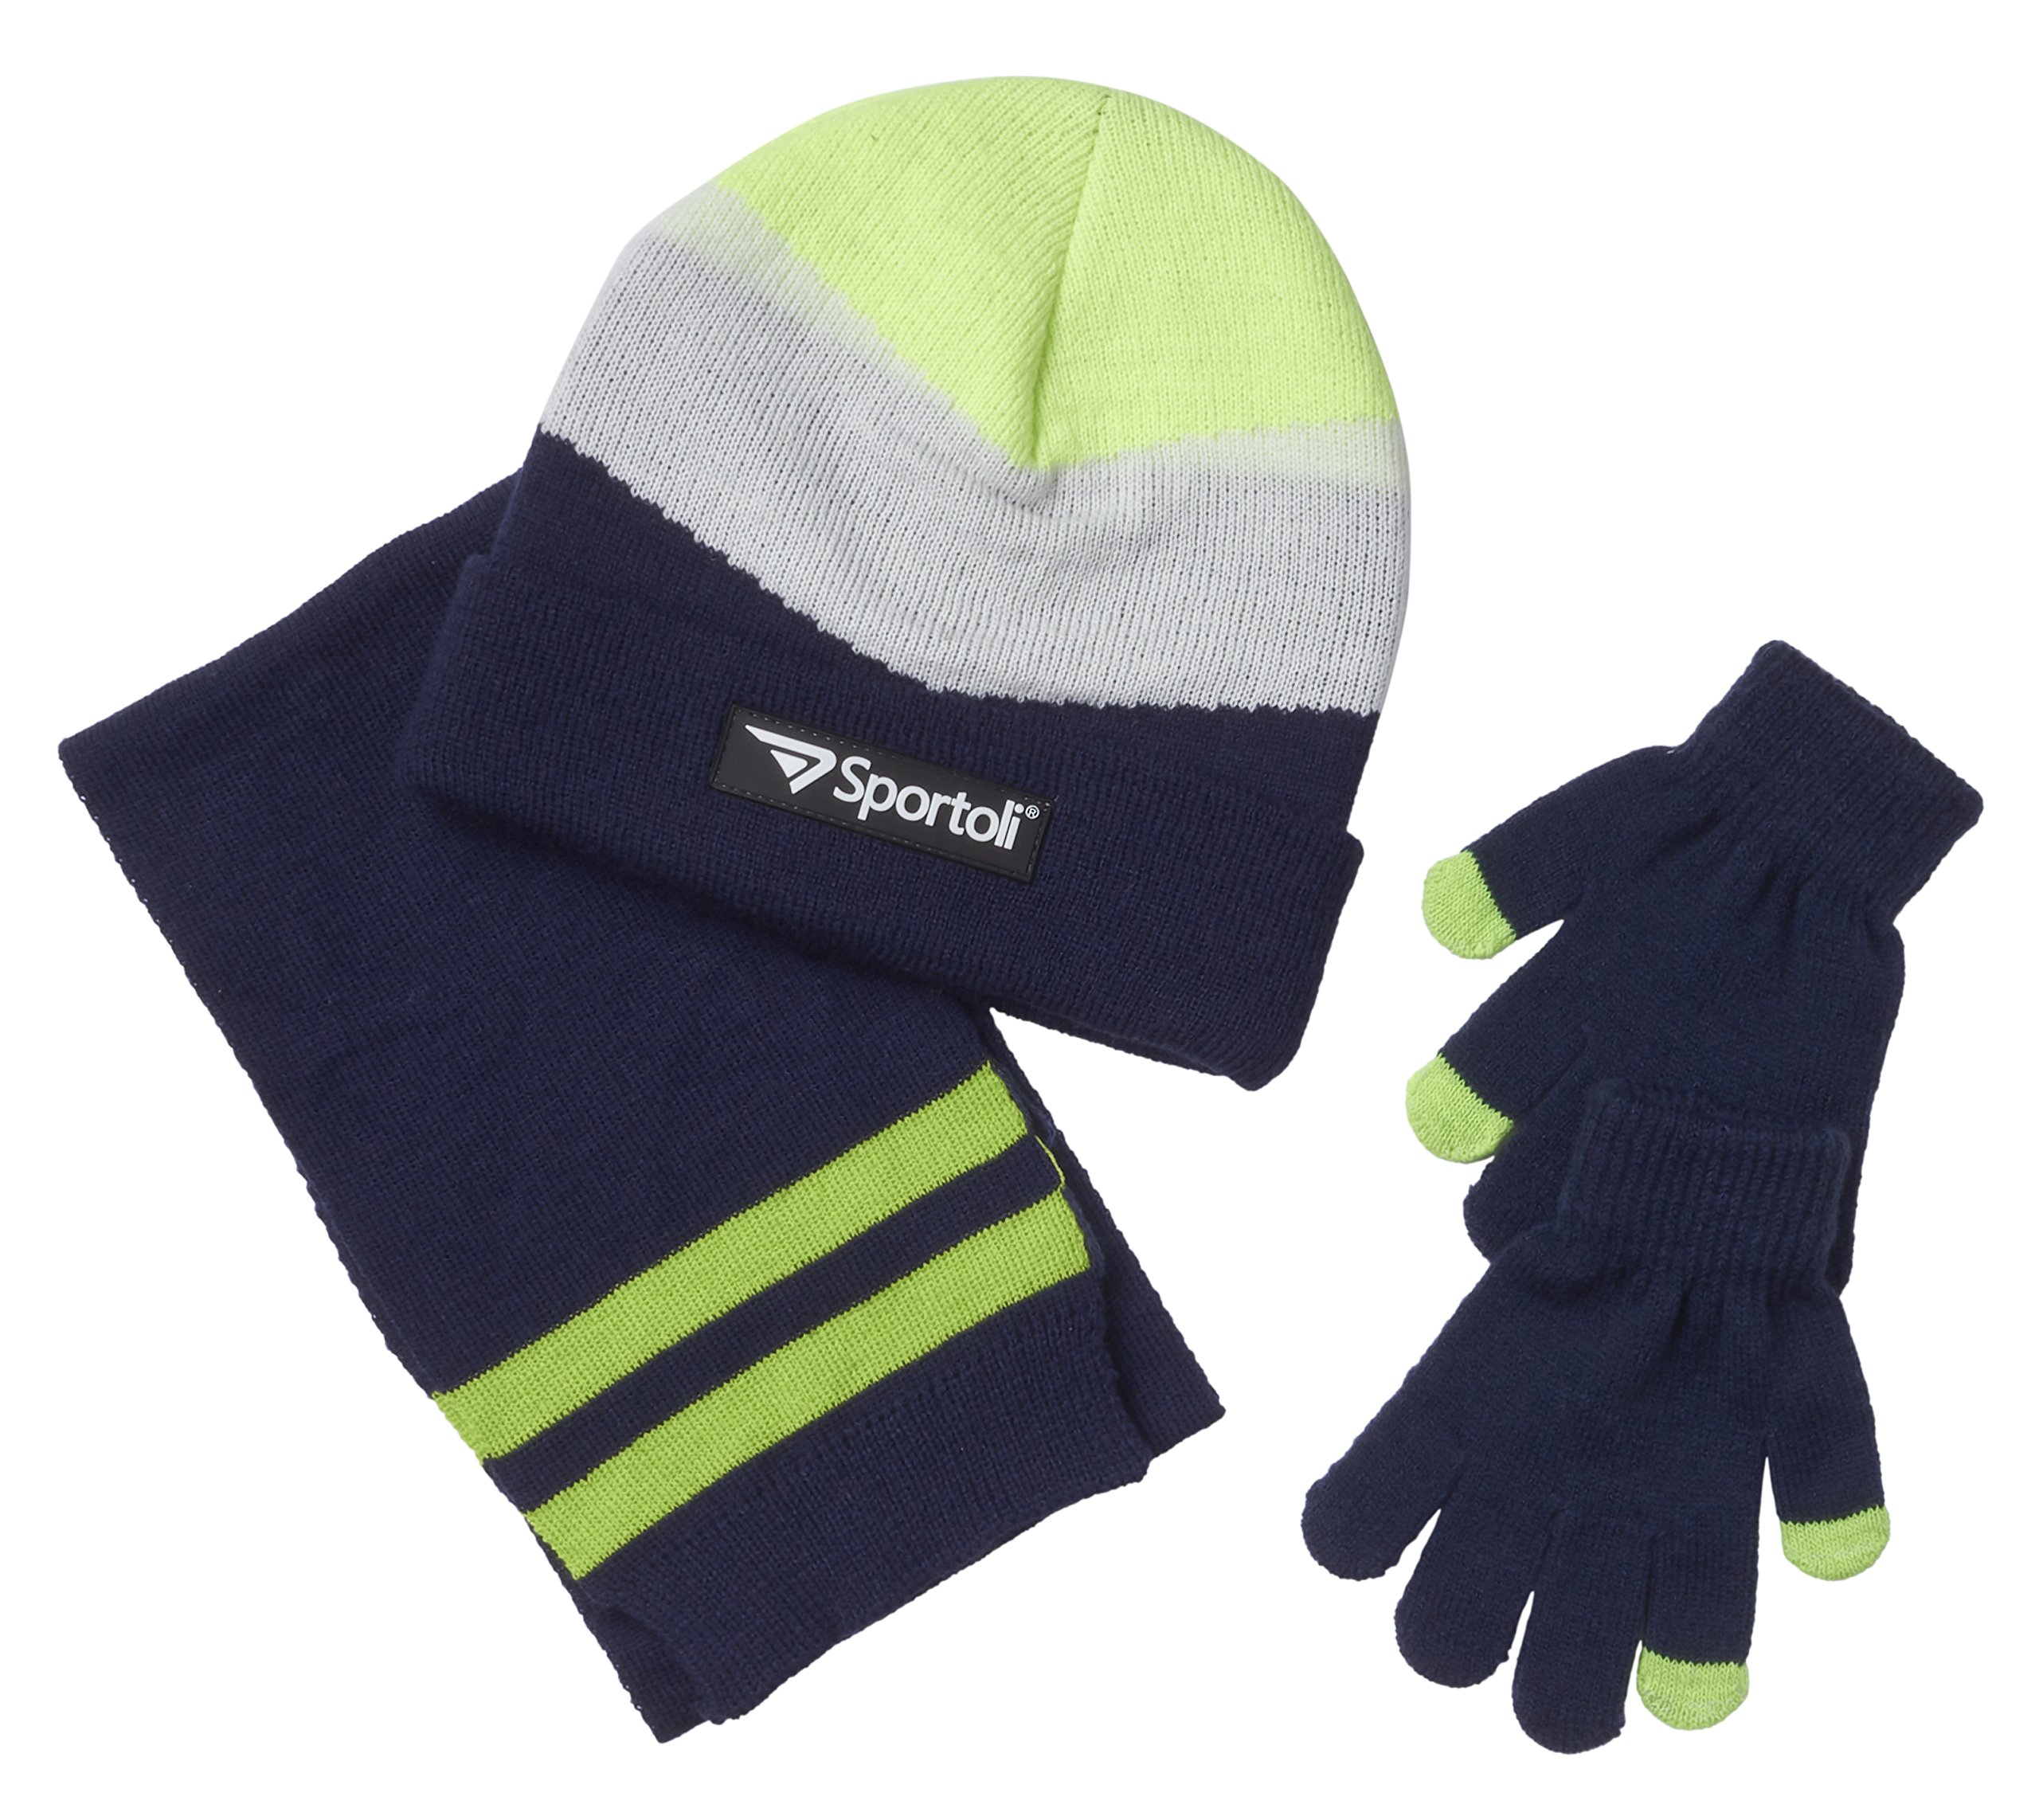 Sportoli Mens Knit Cold Weather Accessory Set Warm Pull On Hat Scarf and Gloves (Lime Chevron),Men / One Size